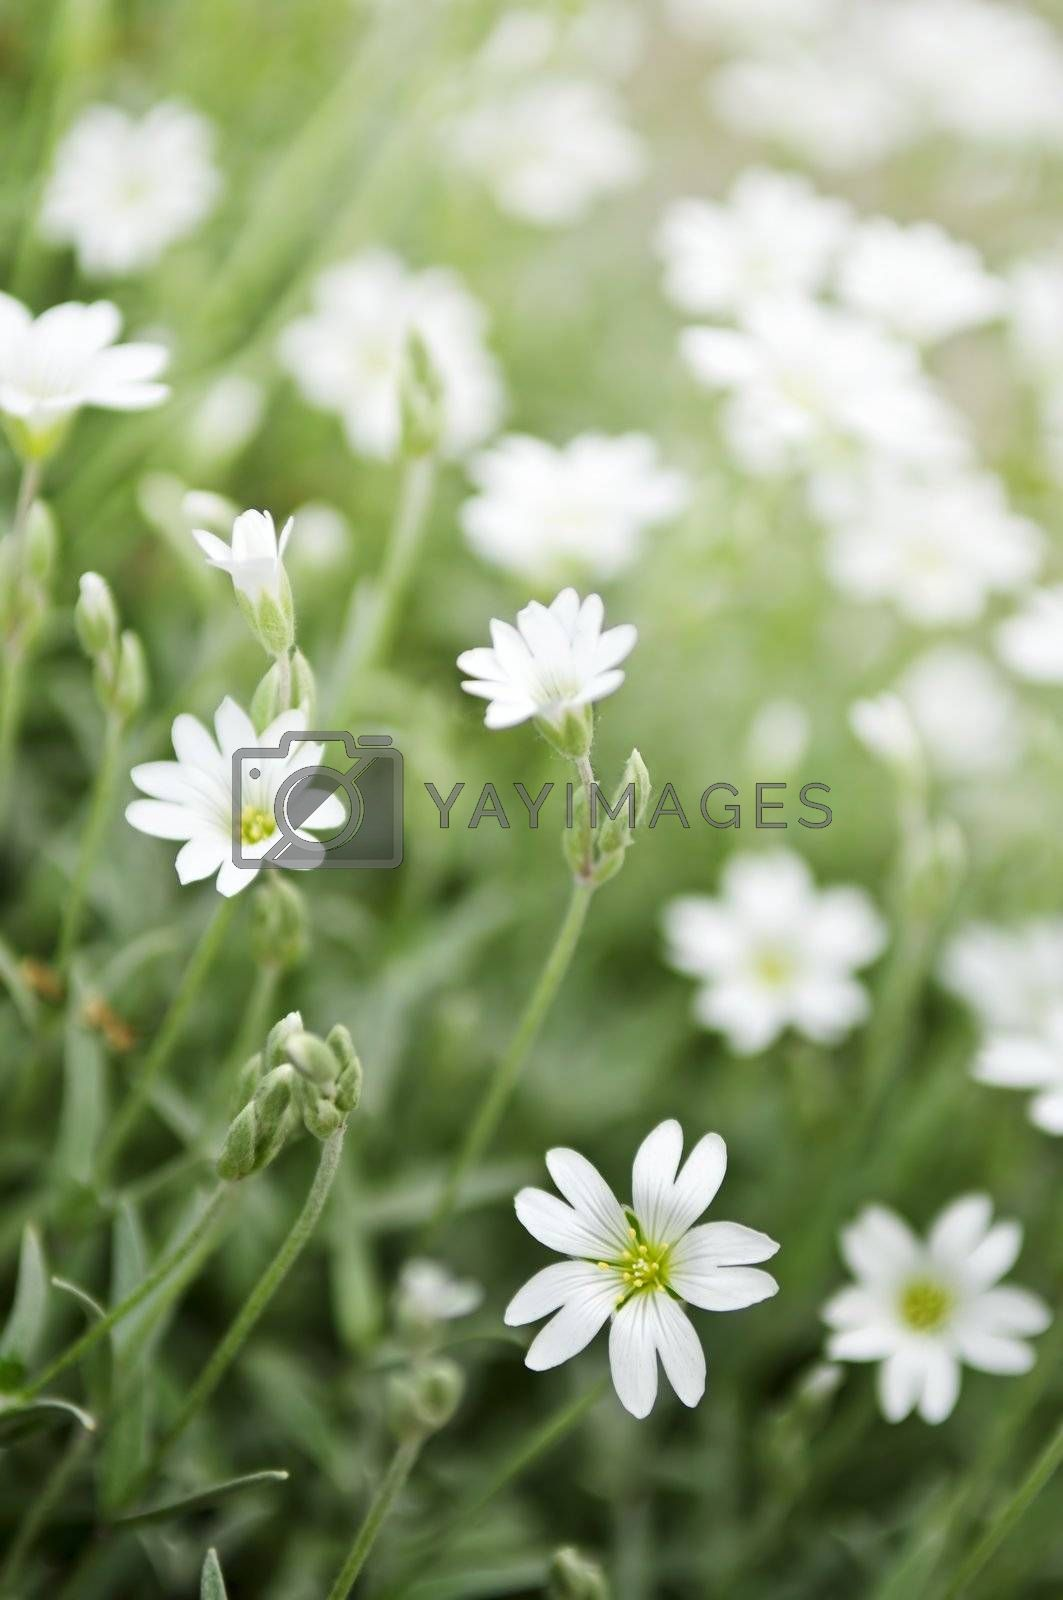 Floral background of cerastium snow-in-summer flowers close up